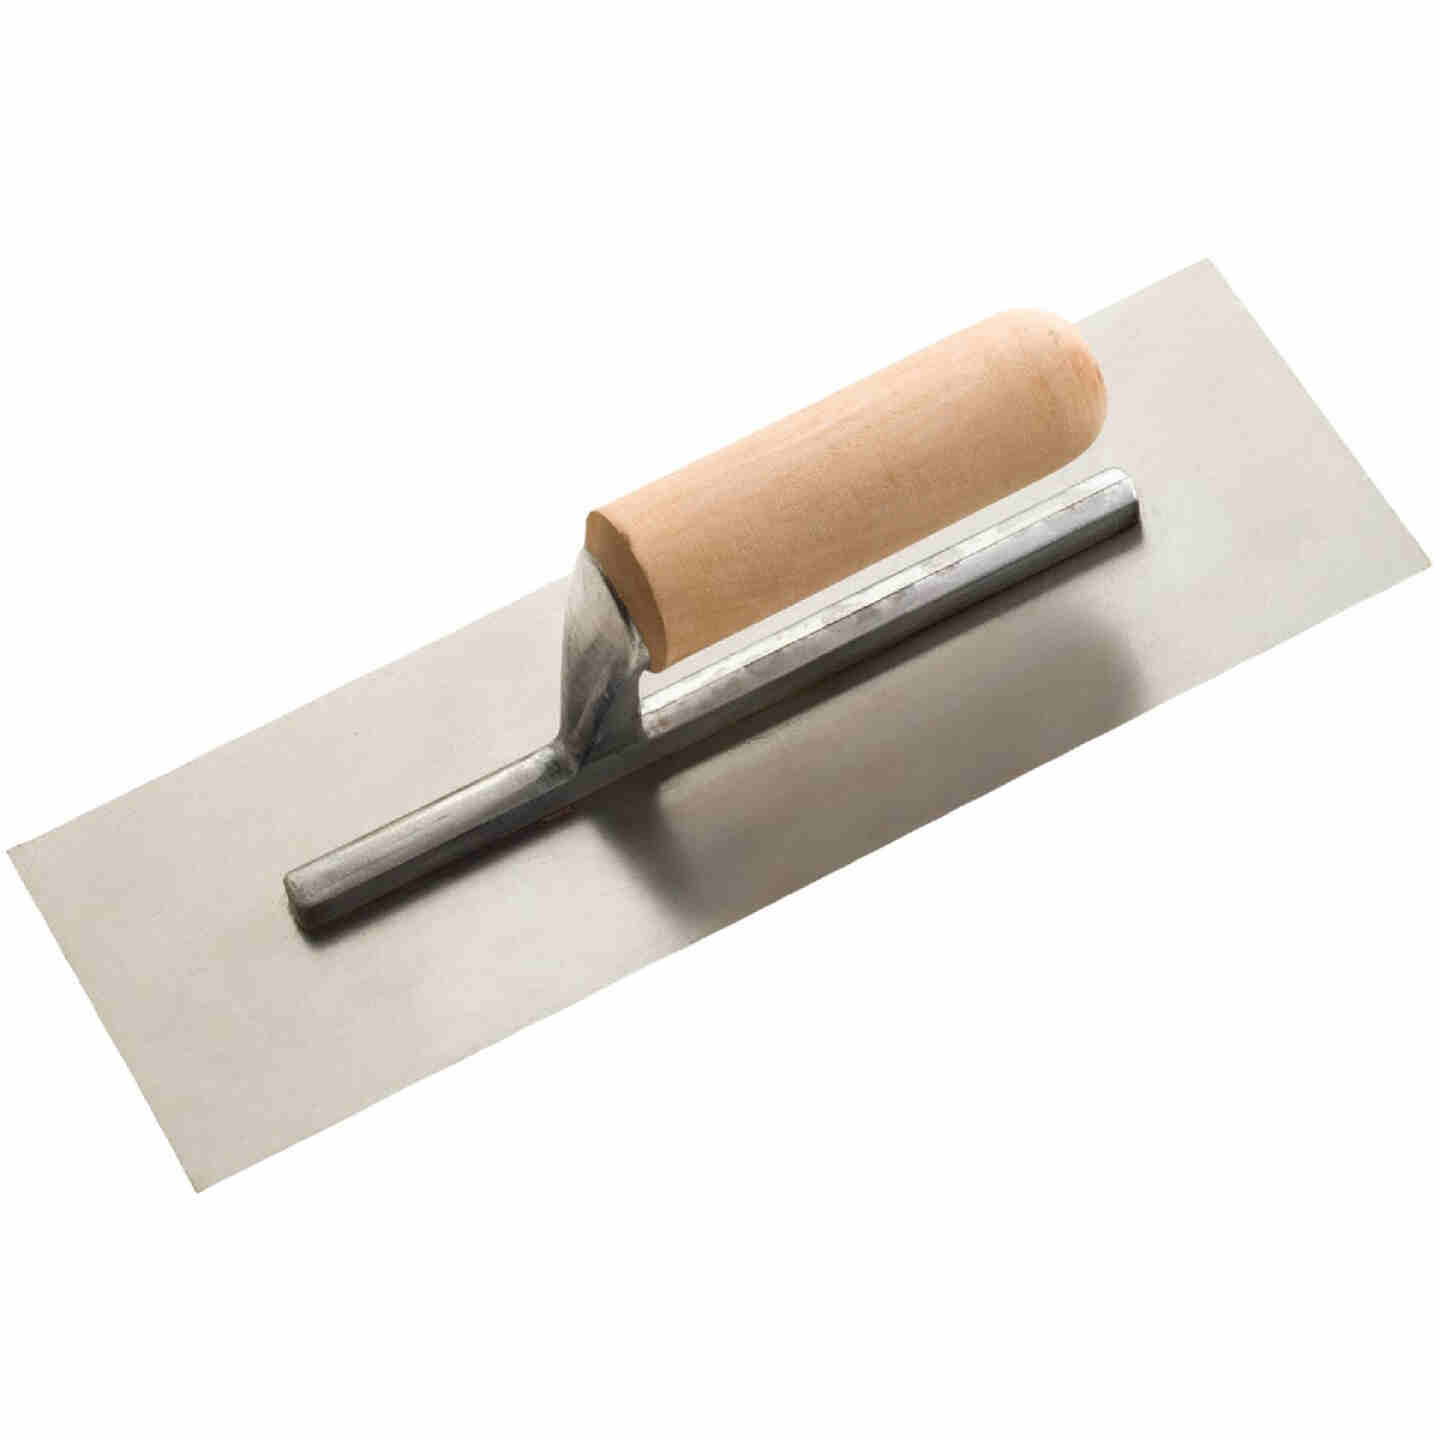 Do it 4-1/2 In. x 12 In. Finishing Trowel with Basswood Handle Image 1